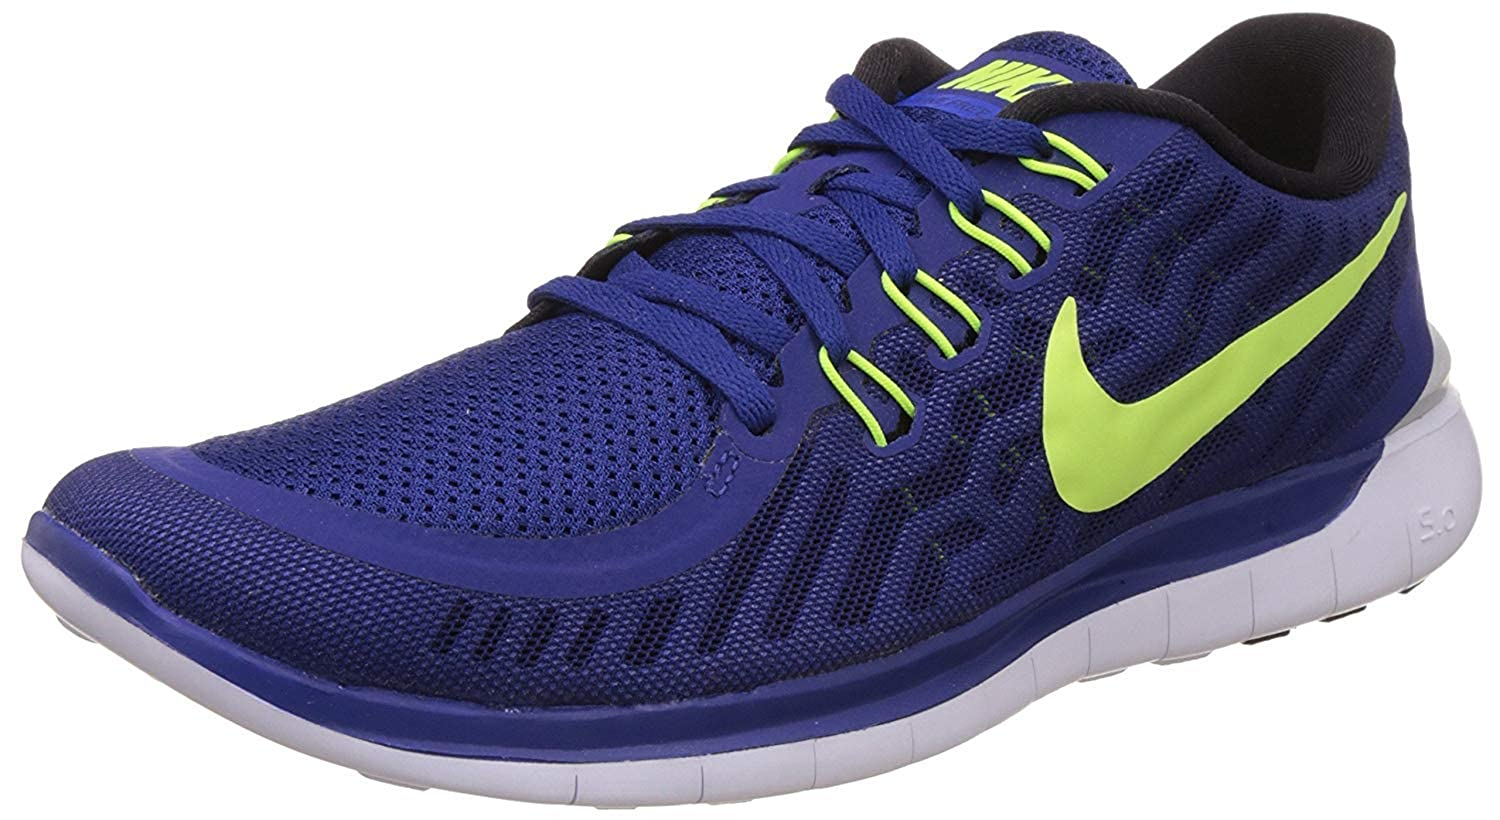 d78bc0b7cb3 Nike Free 5.0 2015 Mens Running Shoes Grey Bright Crimson Silver 749592 008  (9)  Buy Online at Low Prices in India - Amazon.in